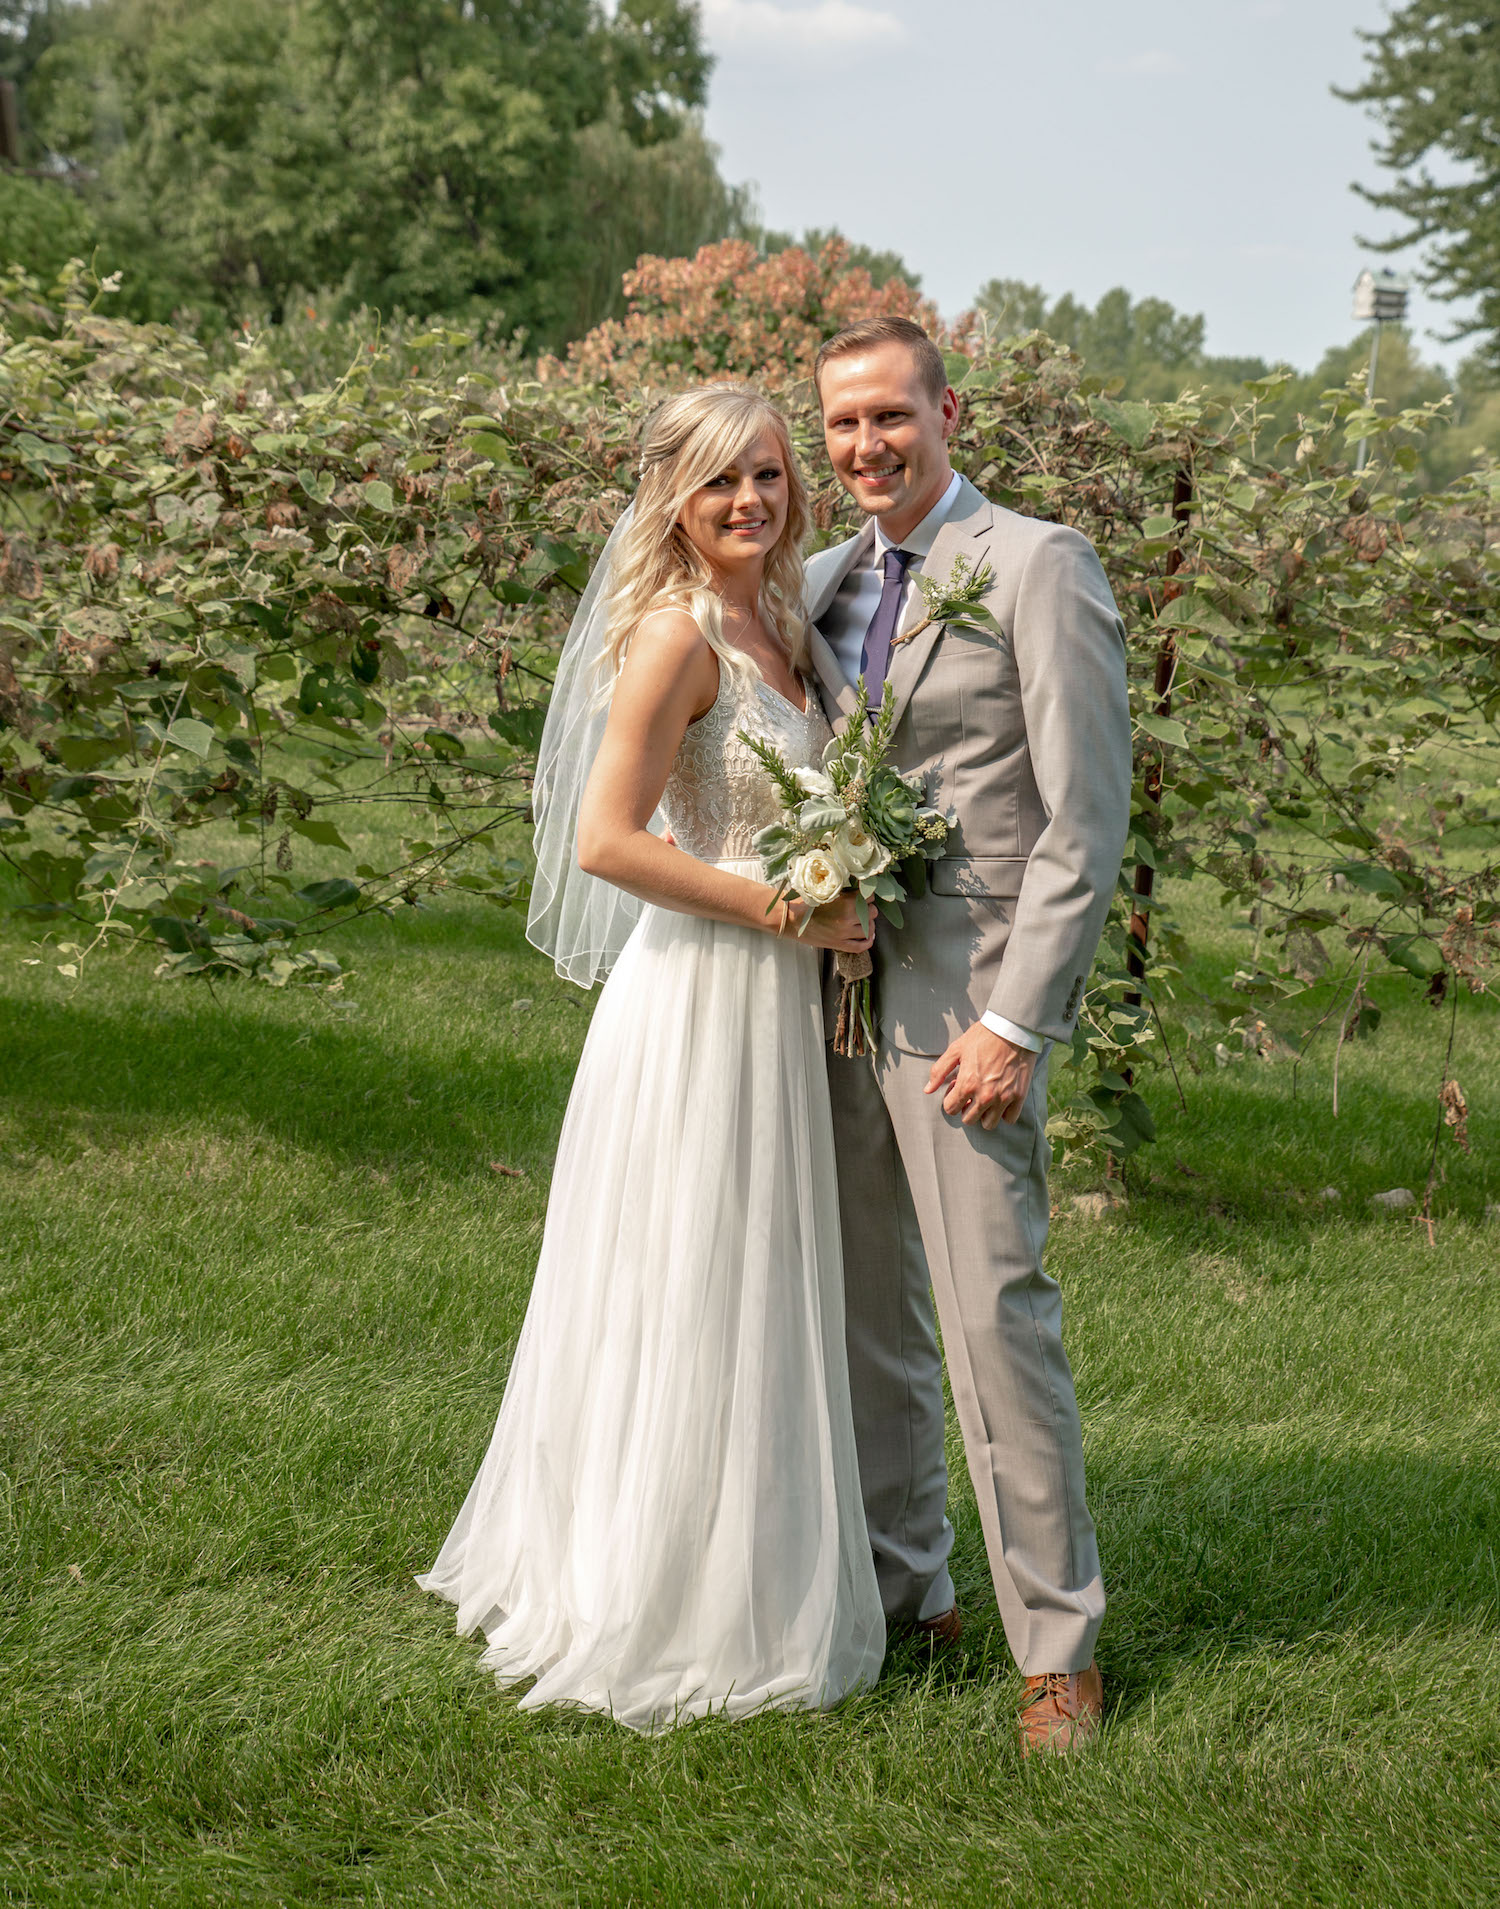 Cindyrellas Garden outdoor wedding ceremony by a private lake with wooded backdrops, hydrangea